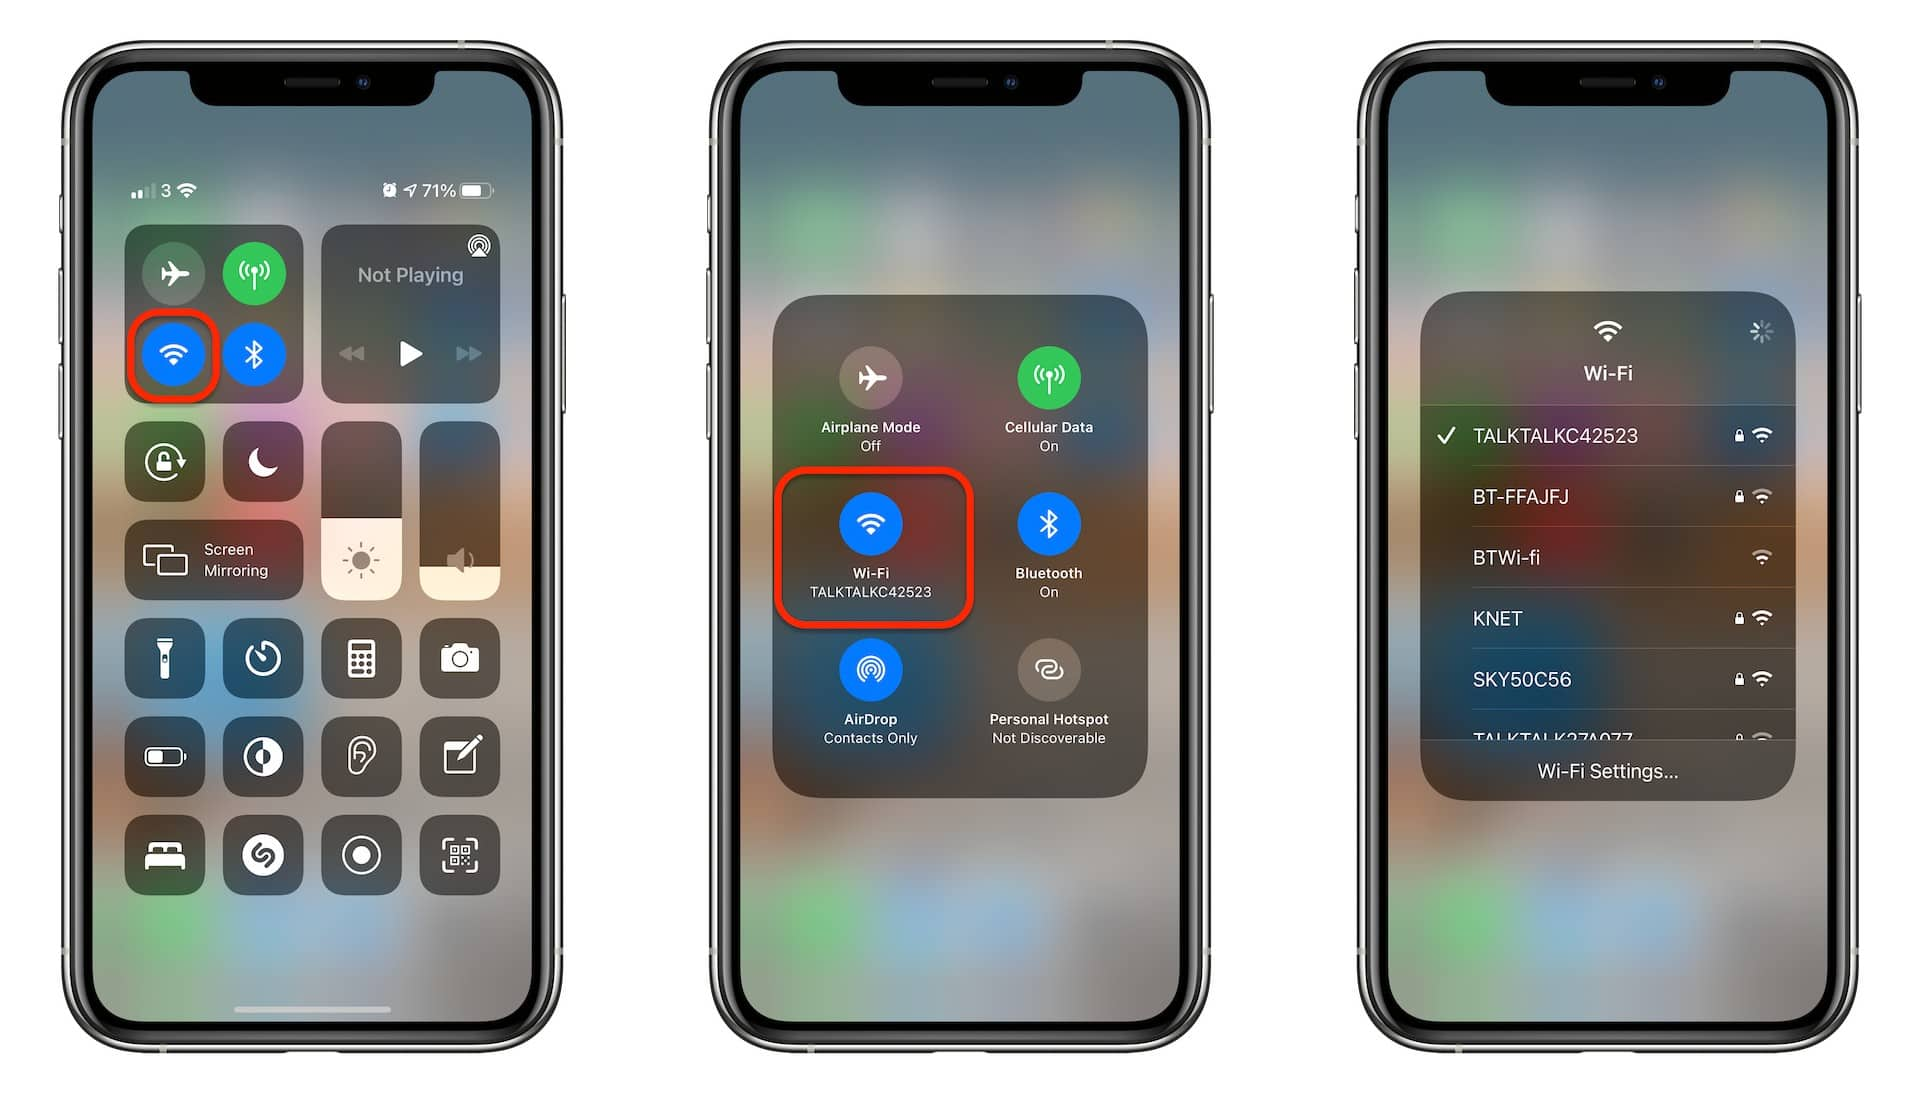 Switch Wi-Fi networks in Control Center